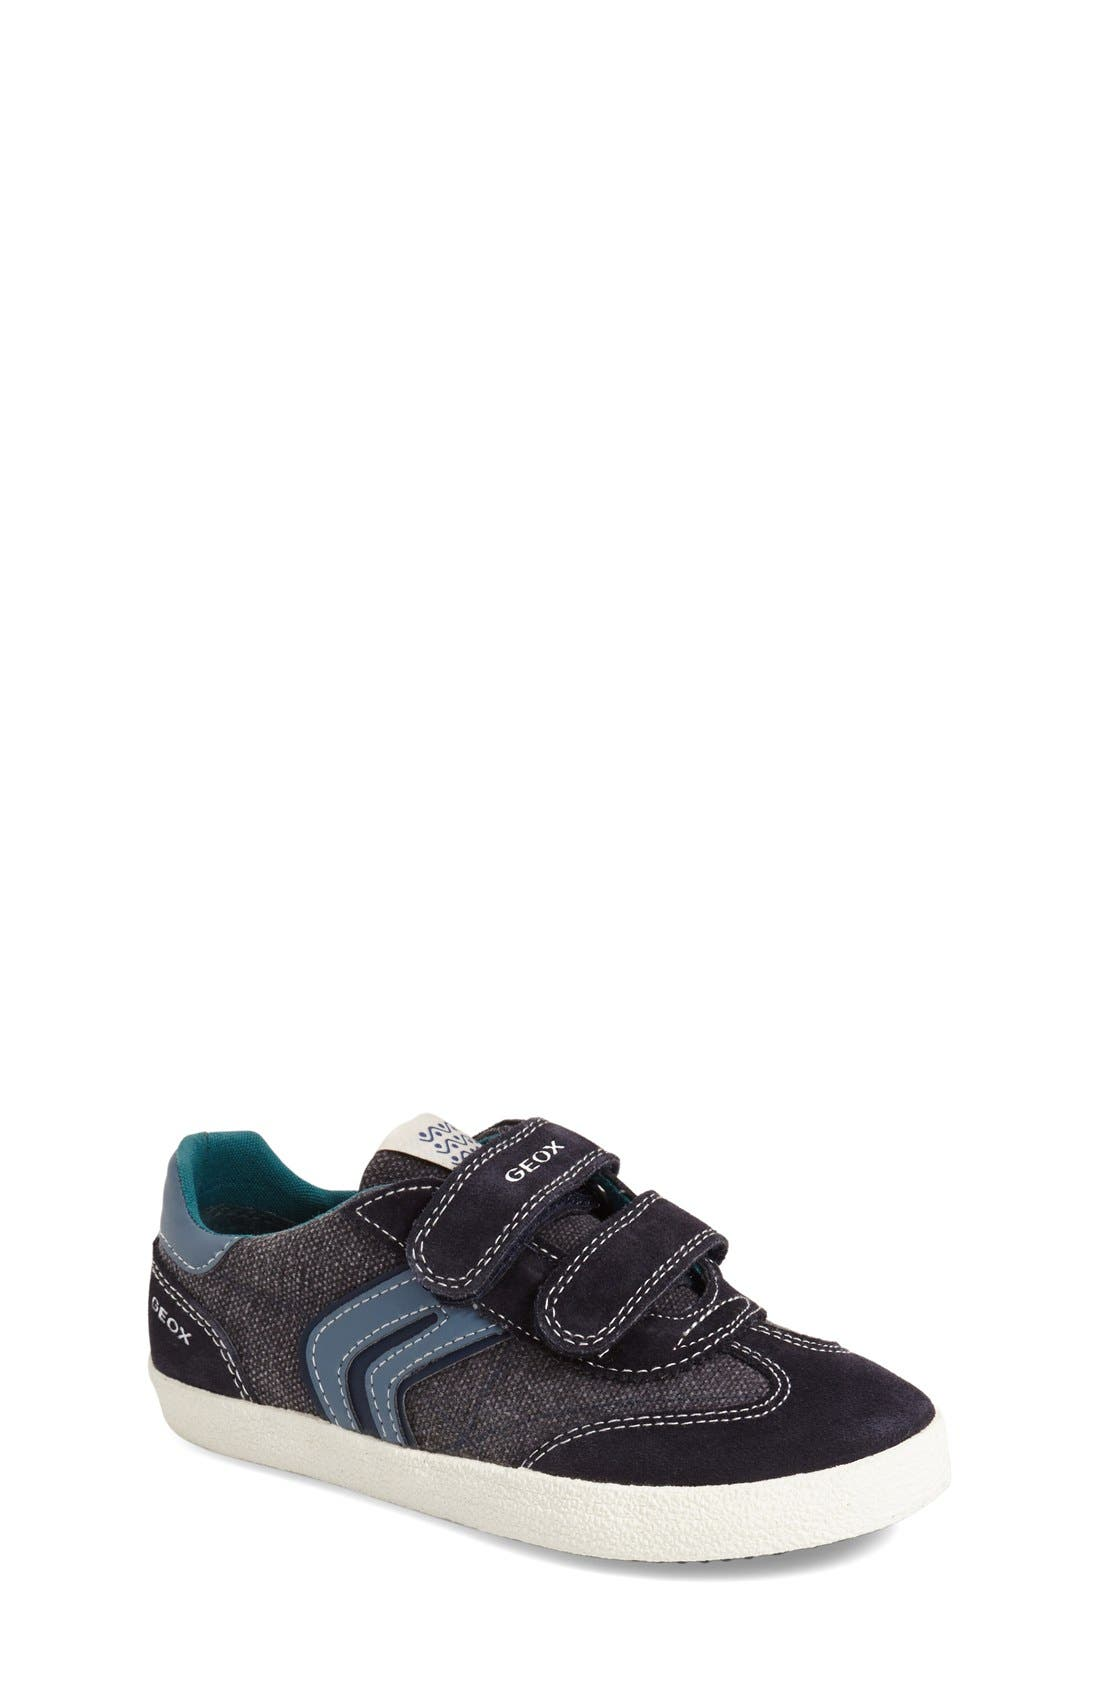 Alternate Image 1 Selected - Geox 'Kiwi' Sneaker (Toddler, Little Kid & Big Kid)